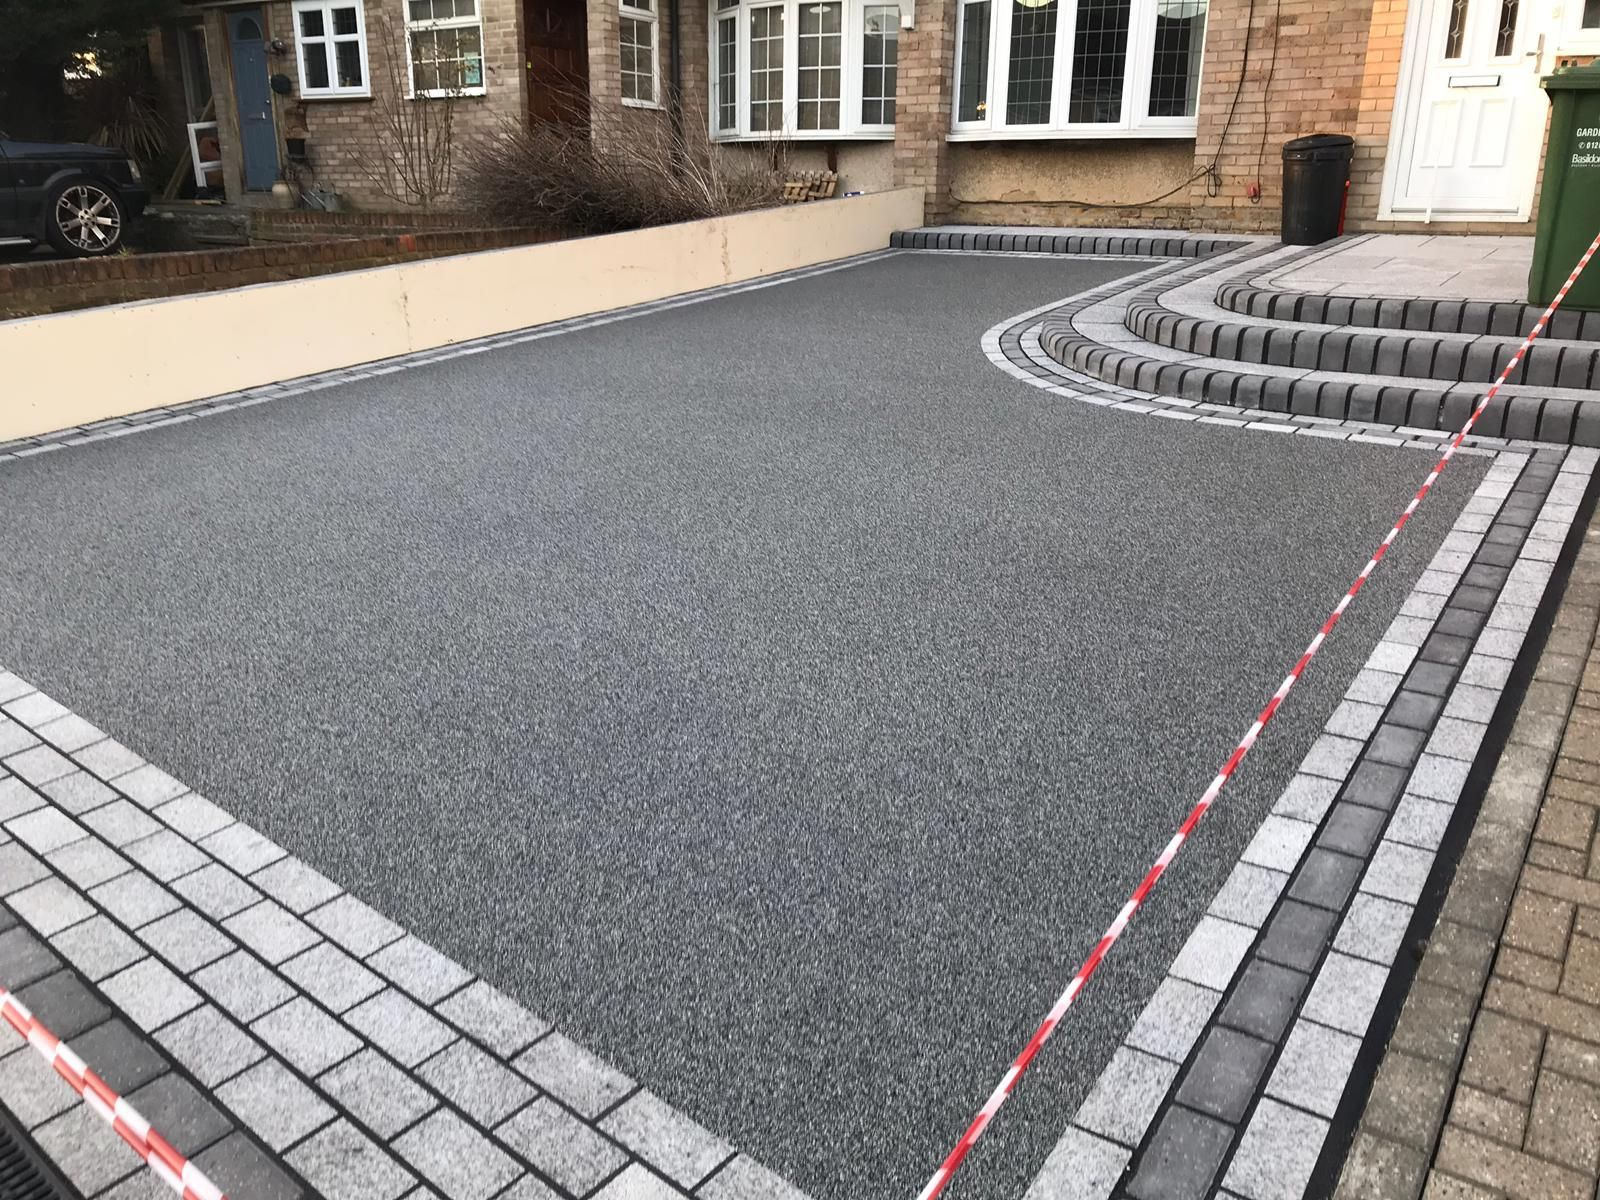 Resin Bound Surfacing Has Become One Of The Fastest Growing Paving